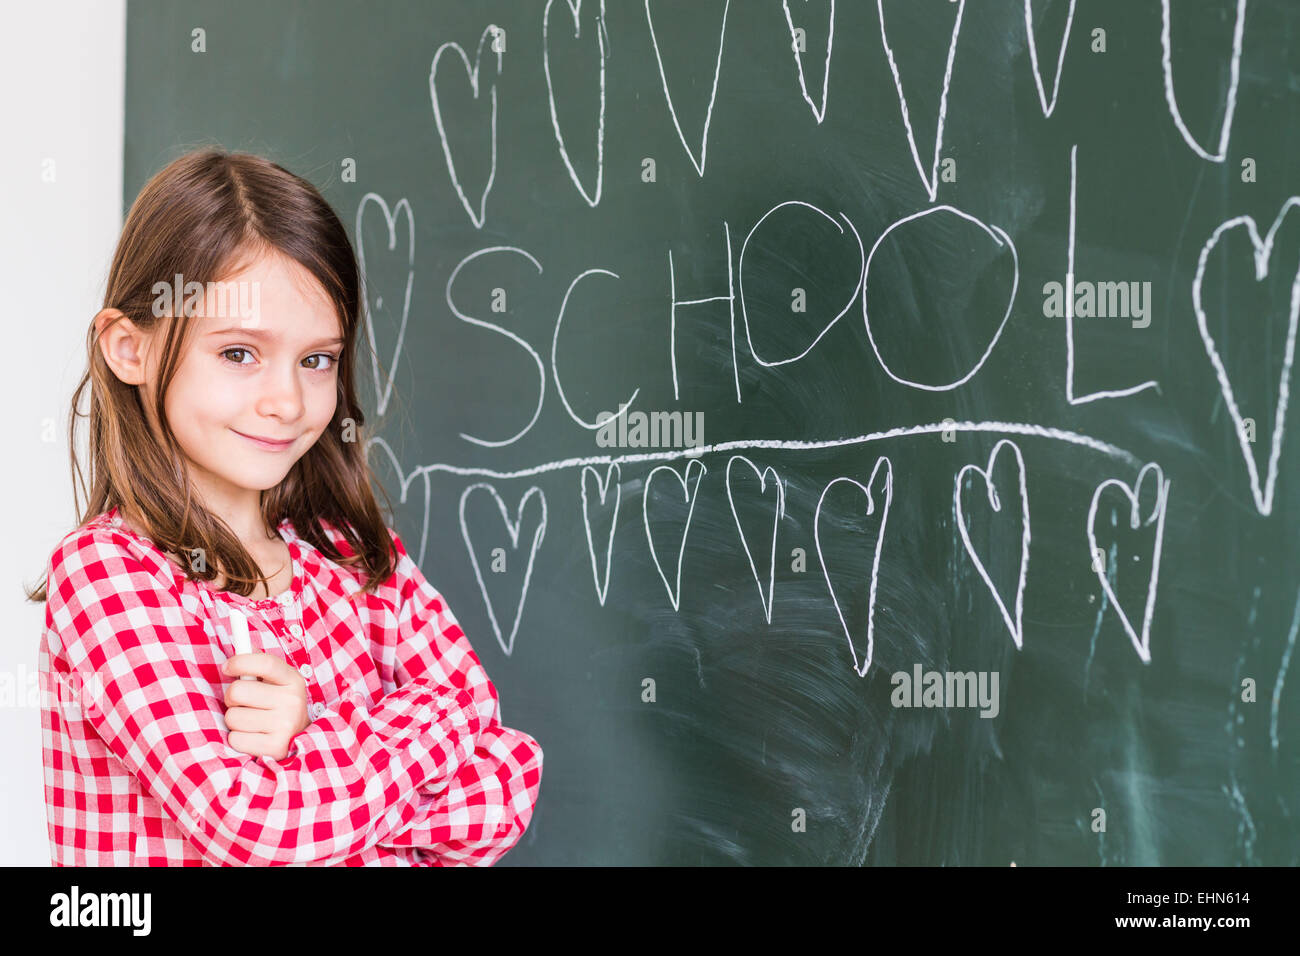 7 year old girl at school. - Stock Image